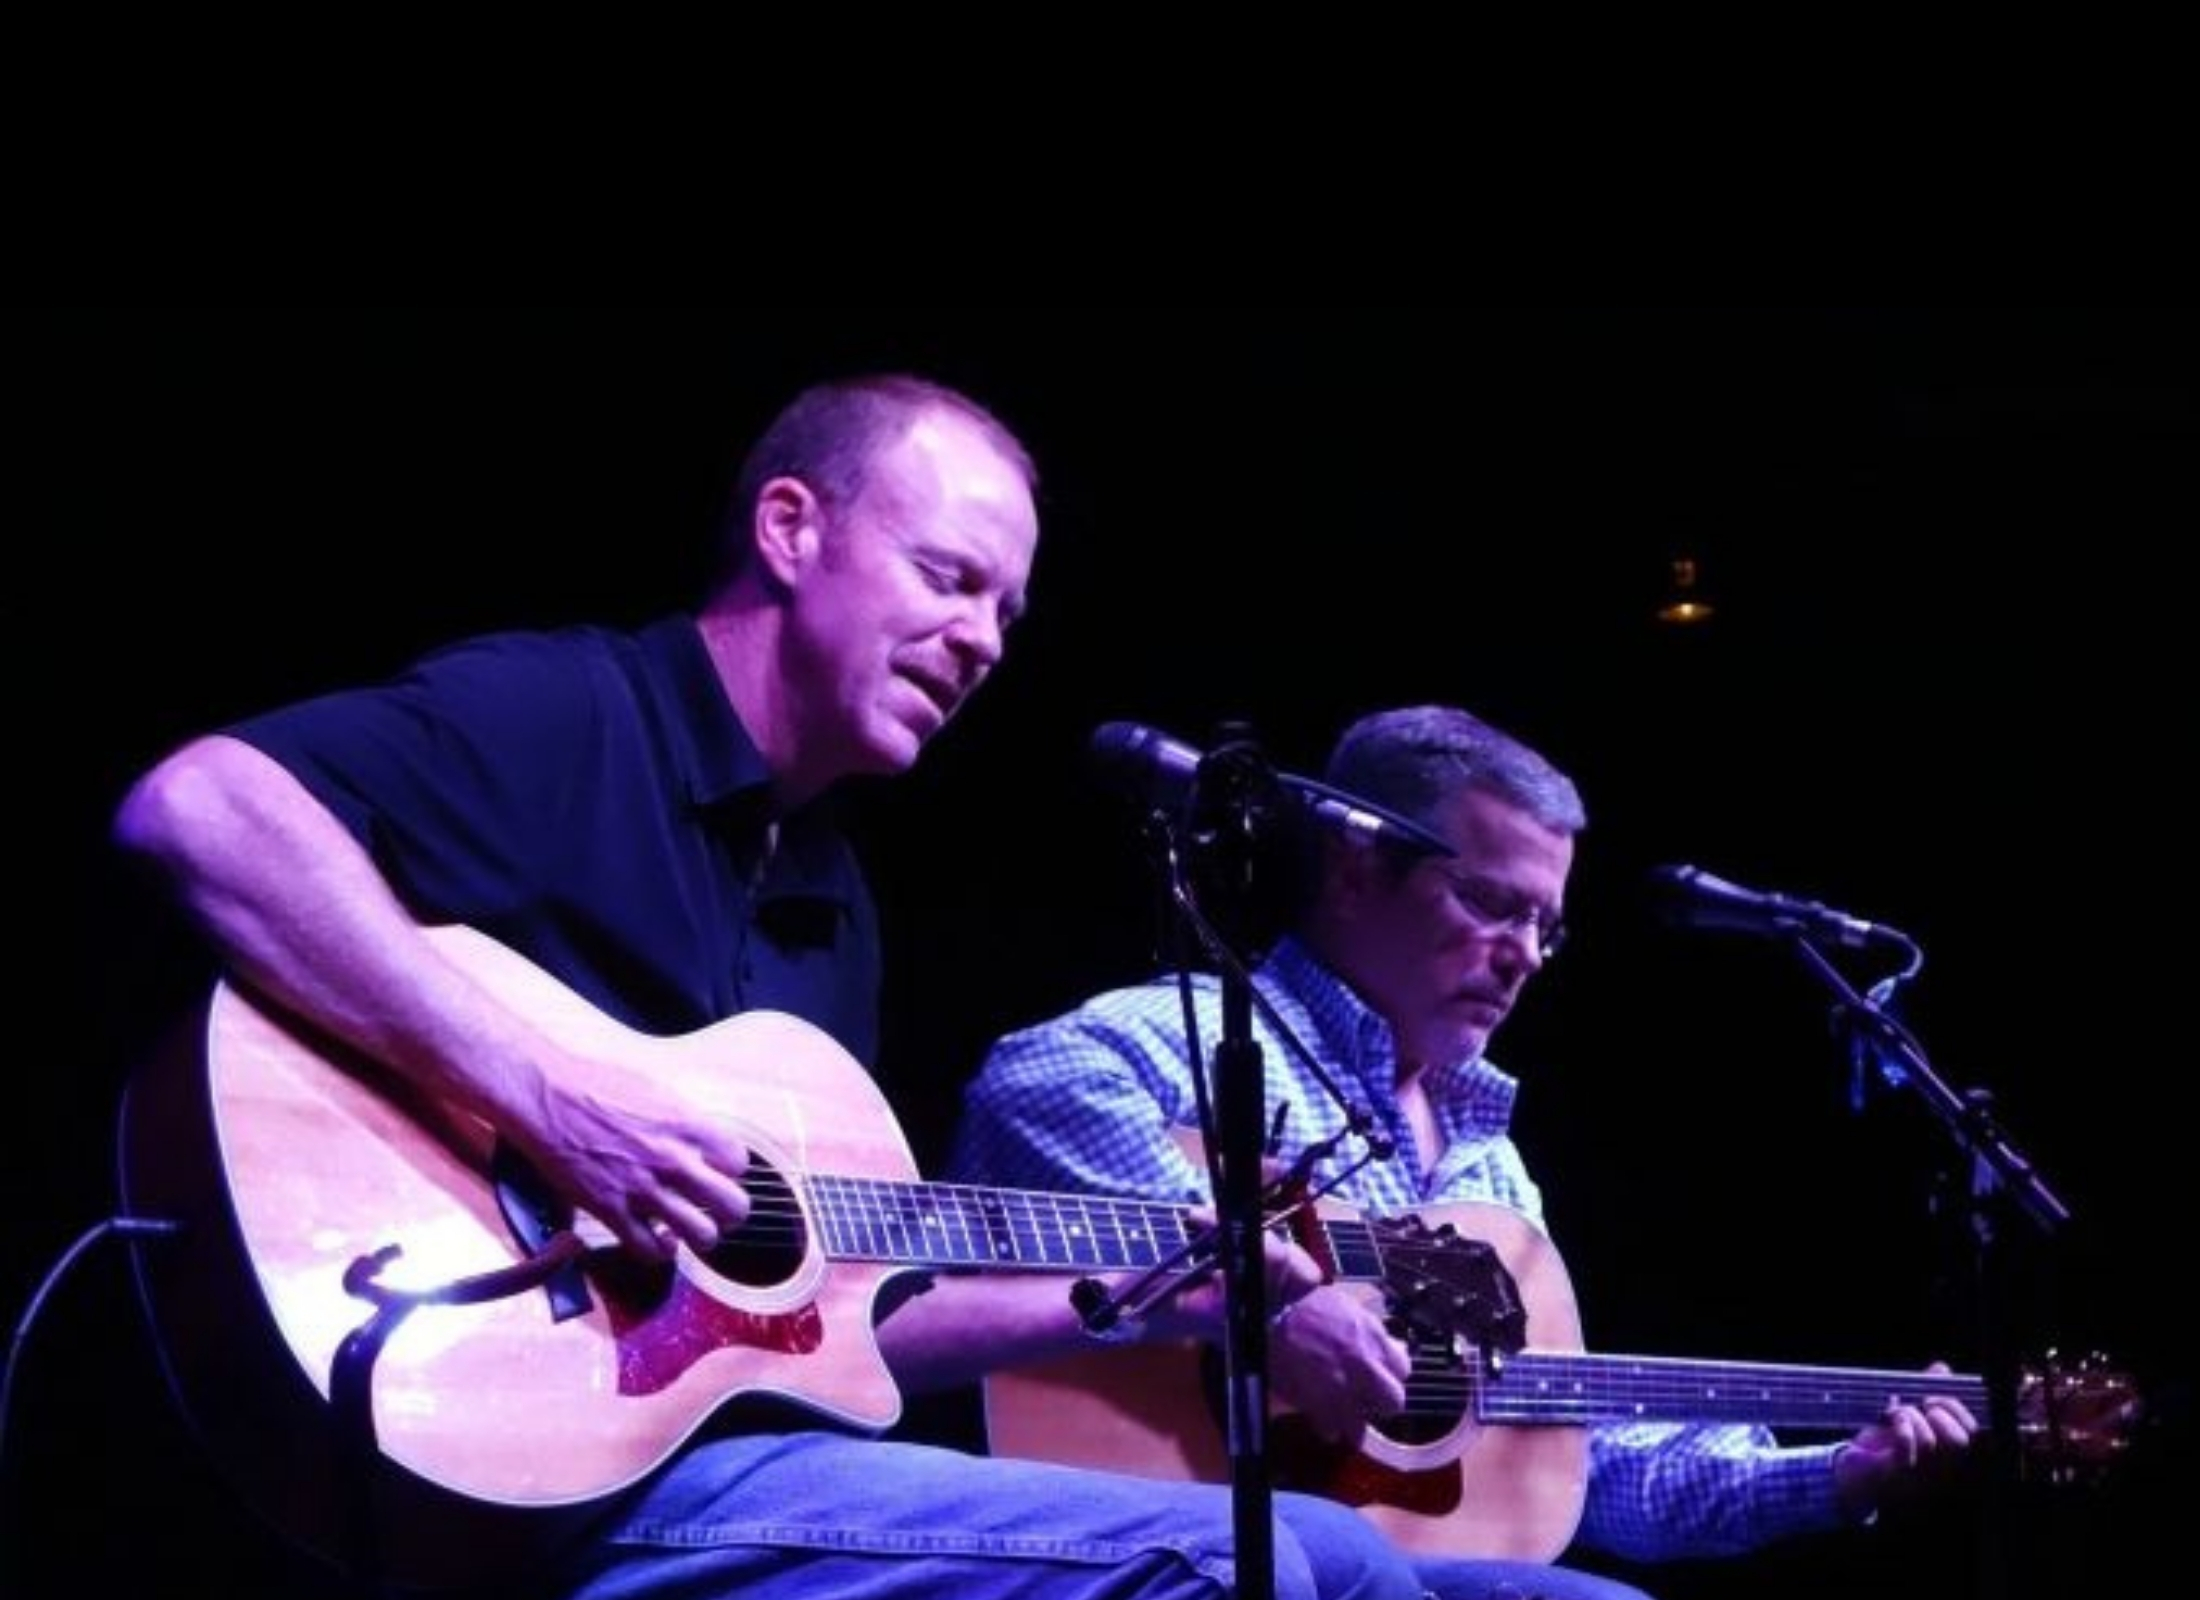 February Live Music at the Grille